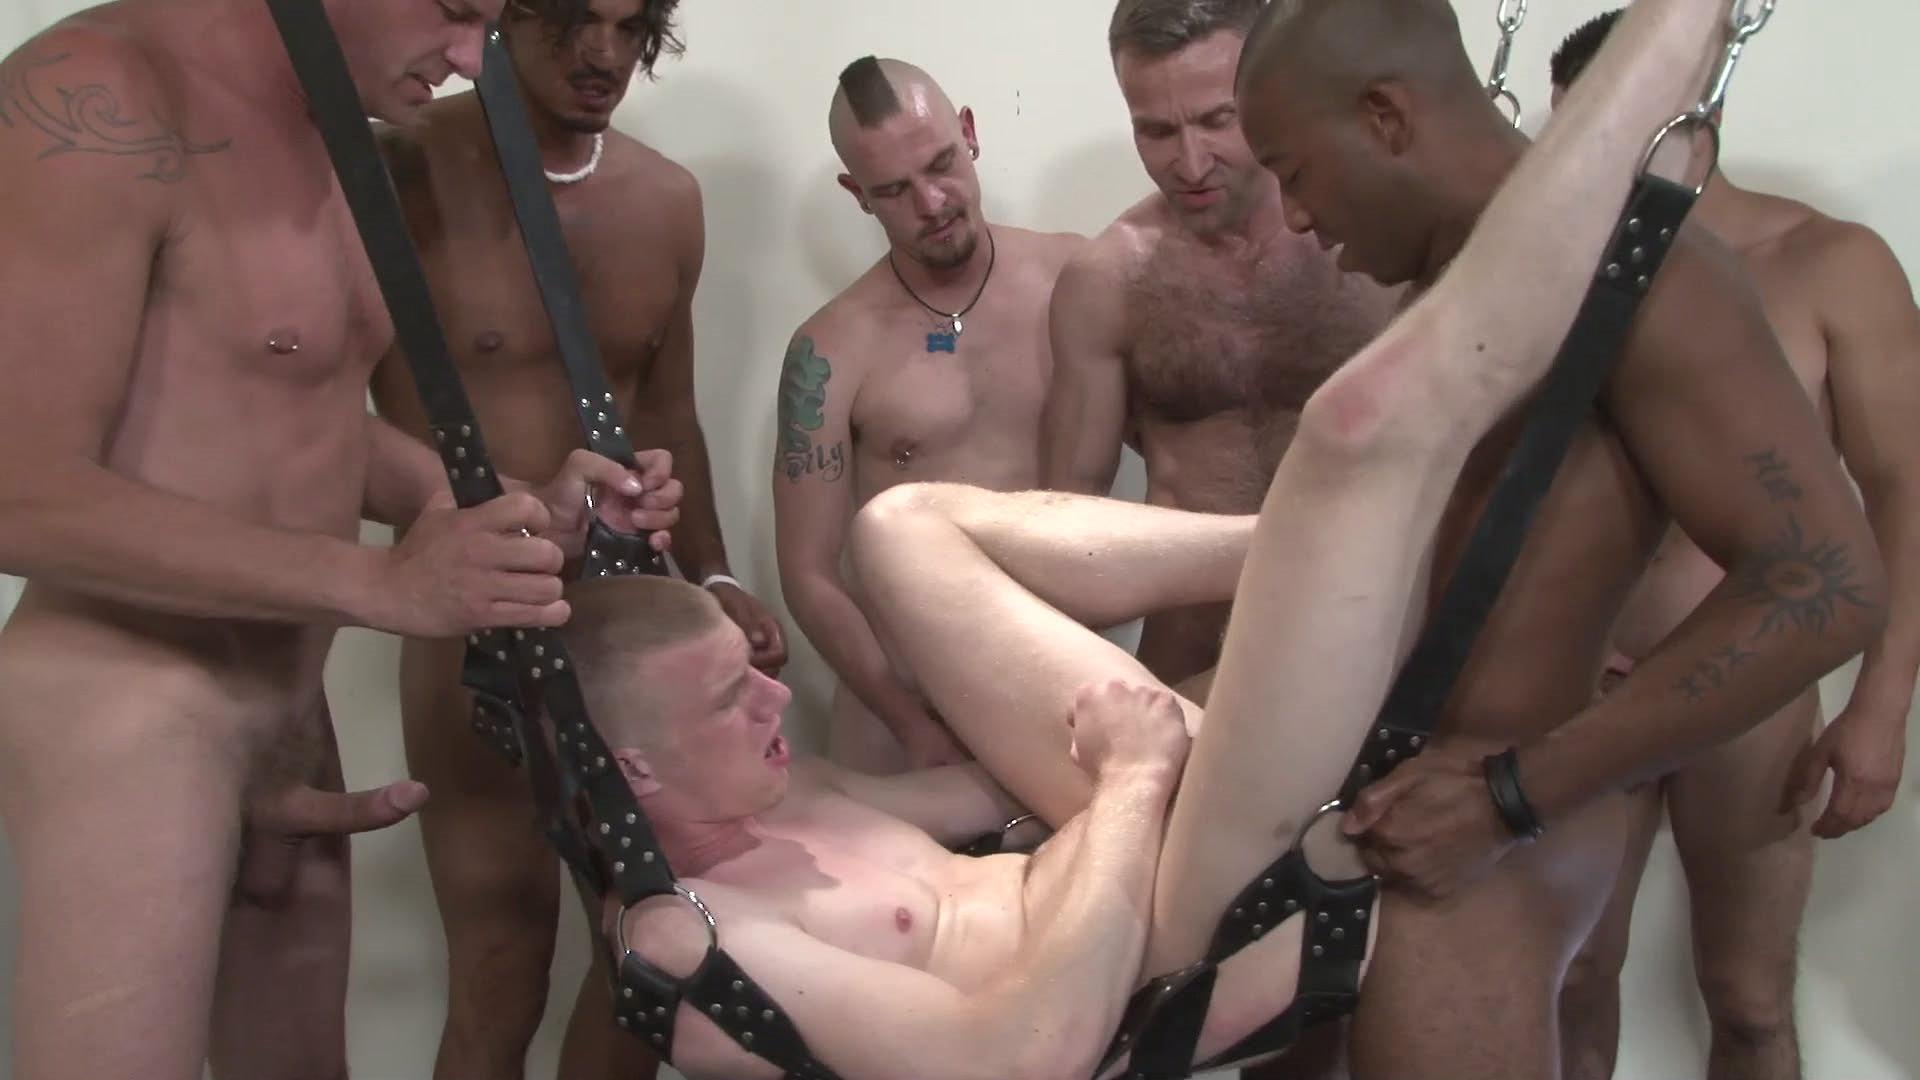 Anal gay interracial gratis xxx play date 8